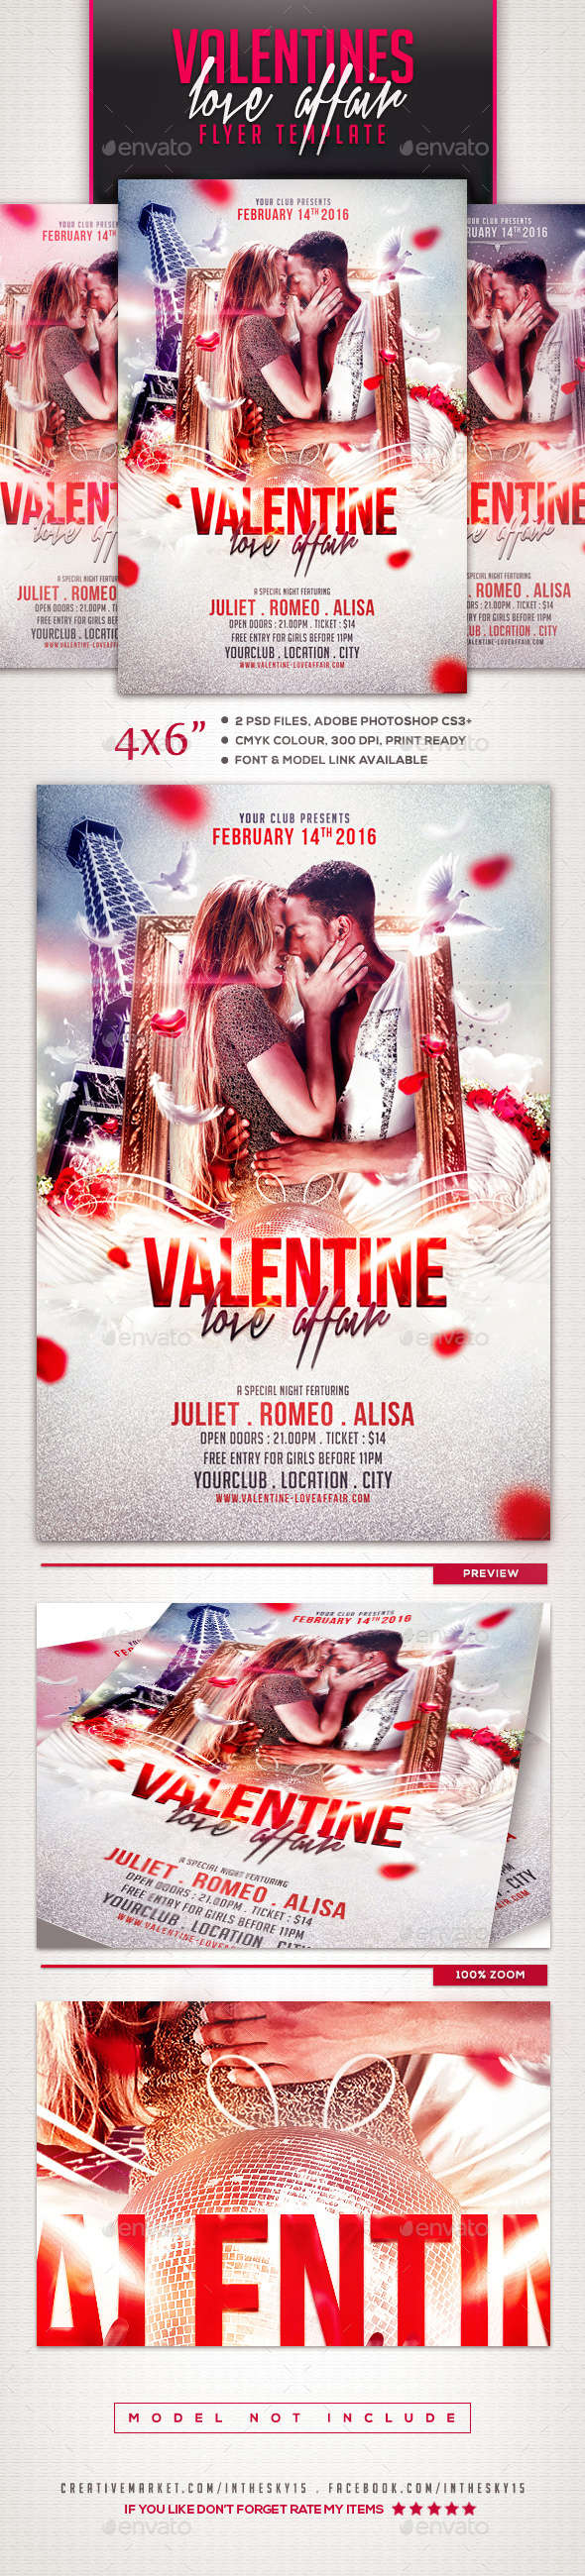 Valentine Love Affair Flyer Template - Events Flyers